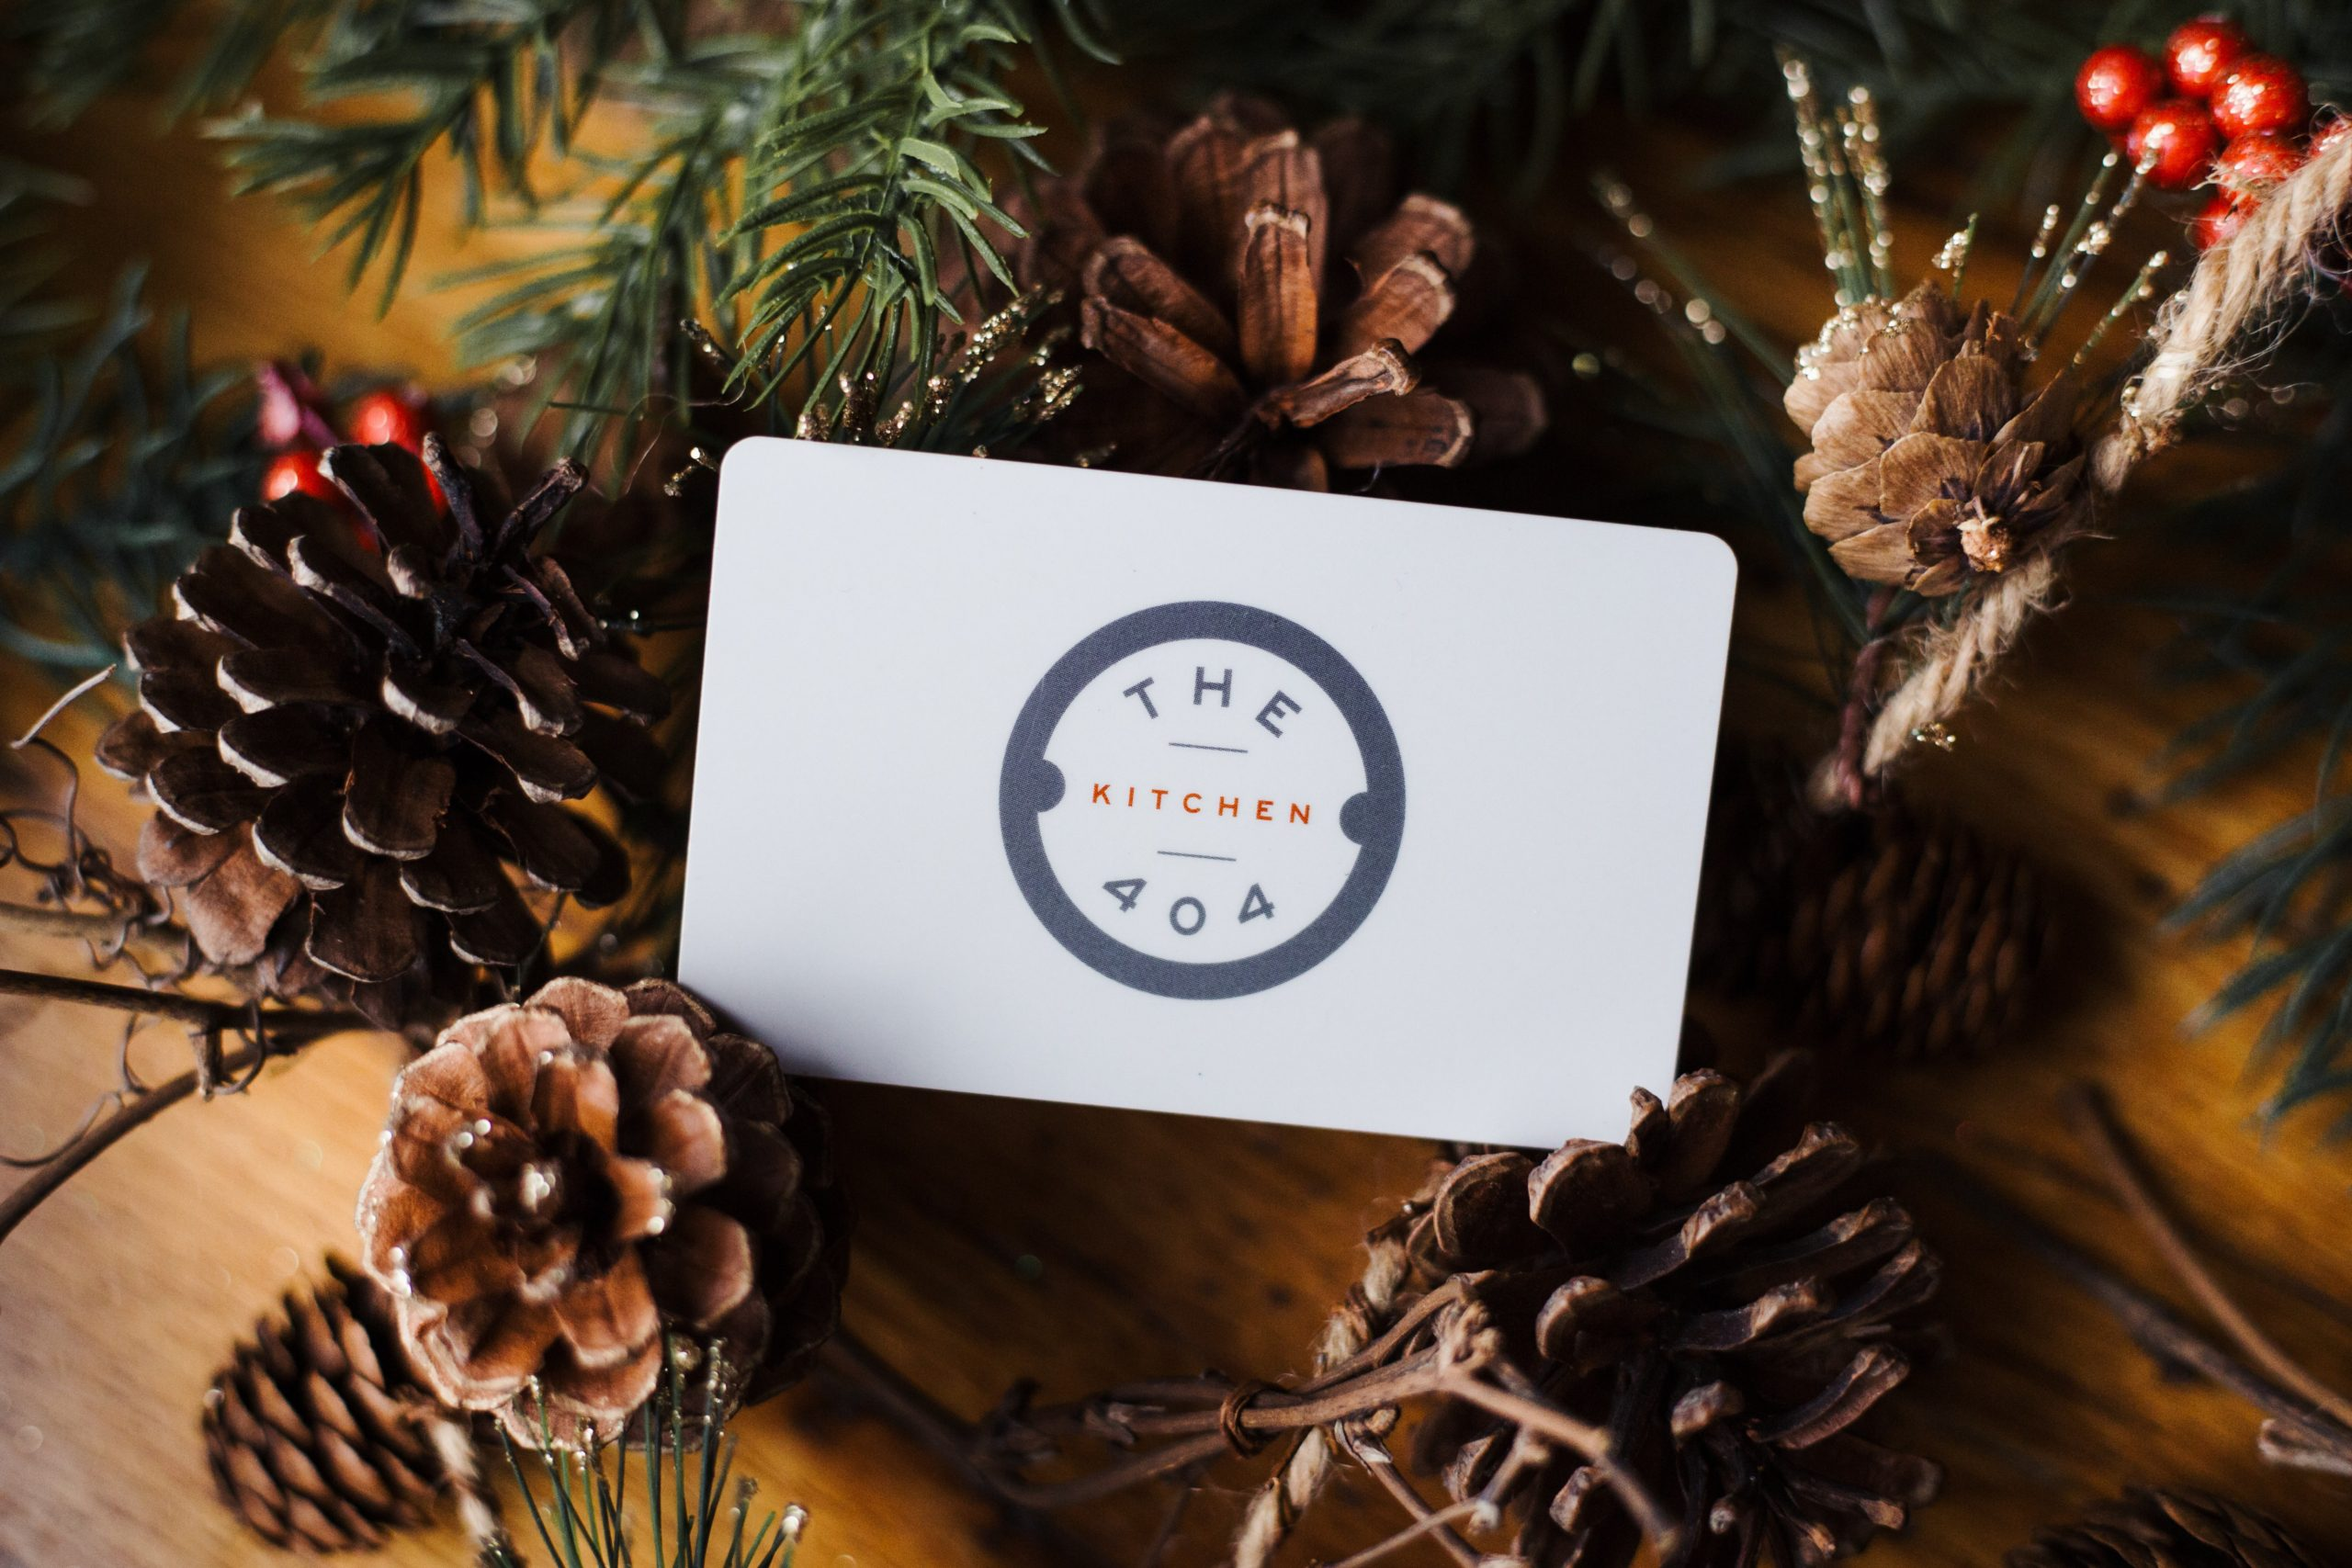 Gift card on a gift box with holiday decorations